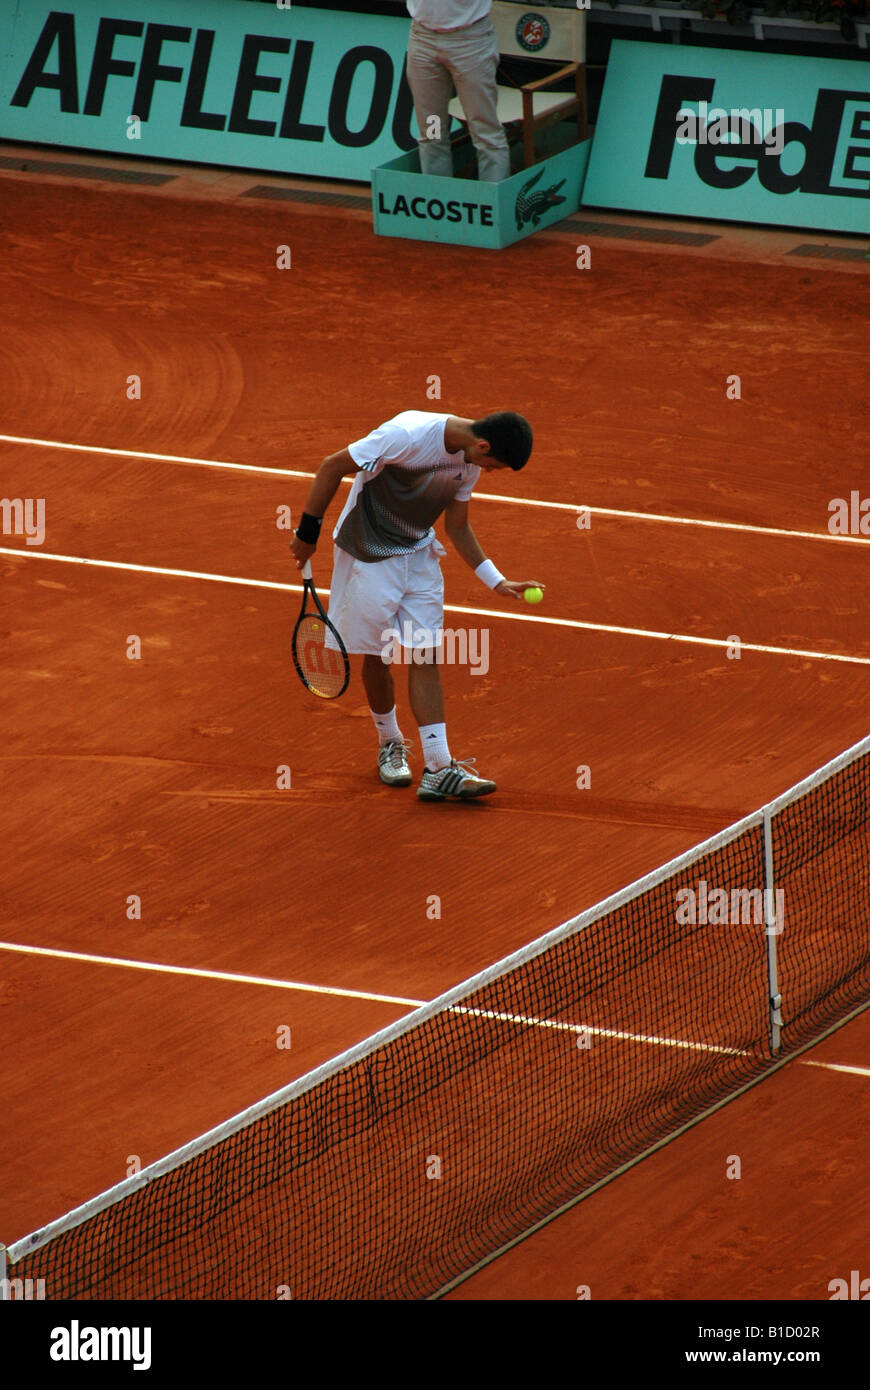 Novak Djokovic amusing the crowd at Rolland Garros during the 2008 French Open - Stock Image